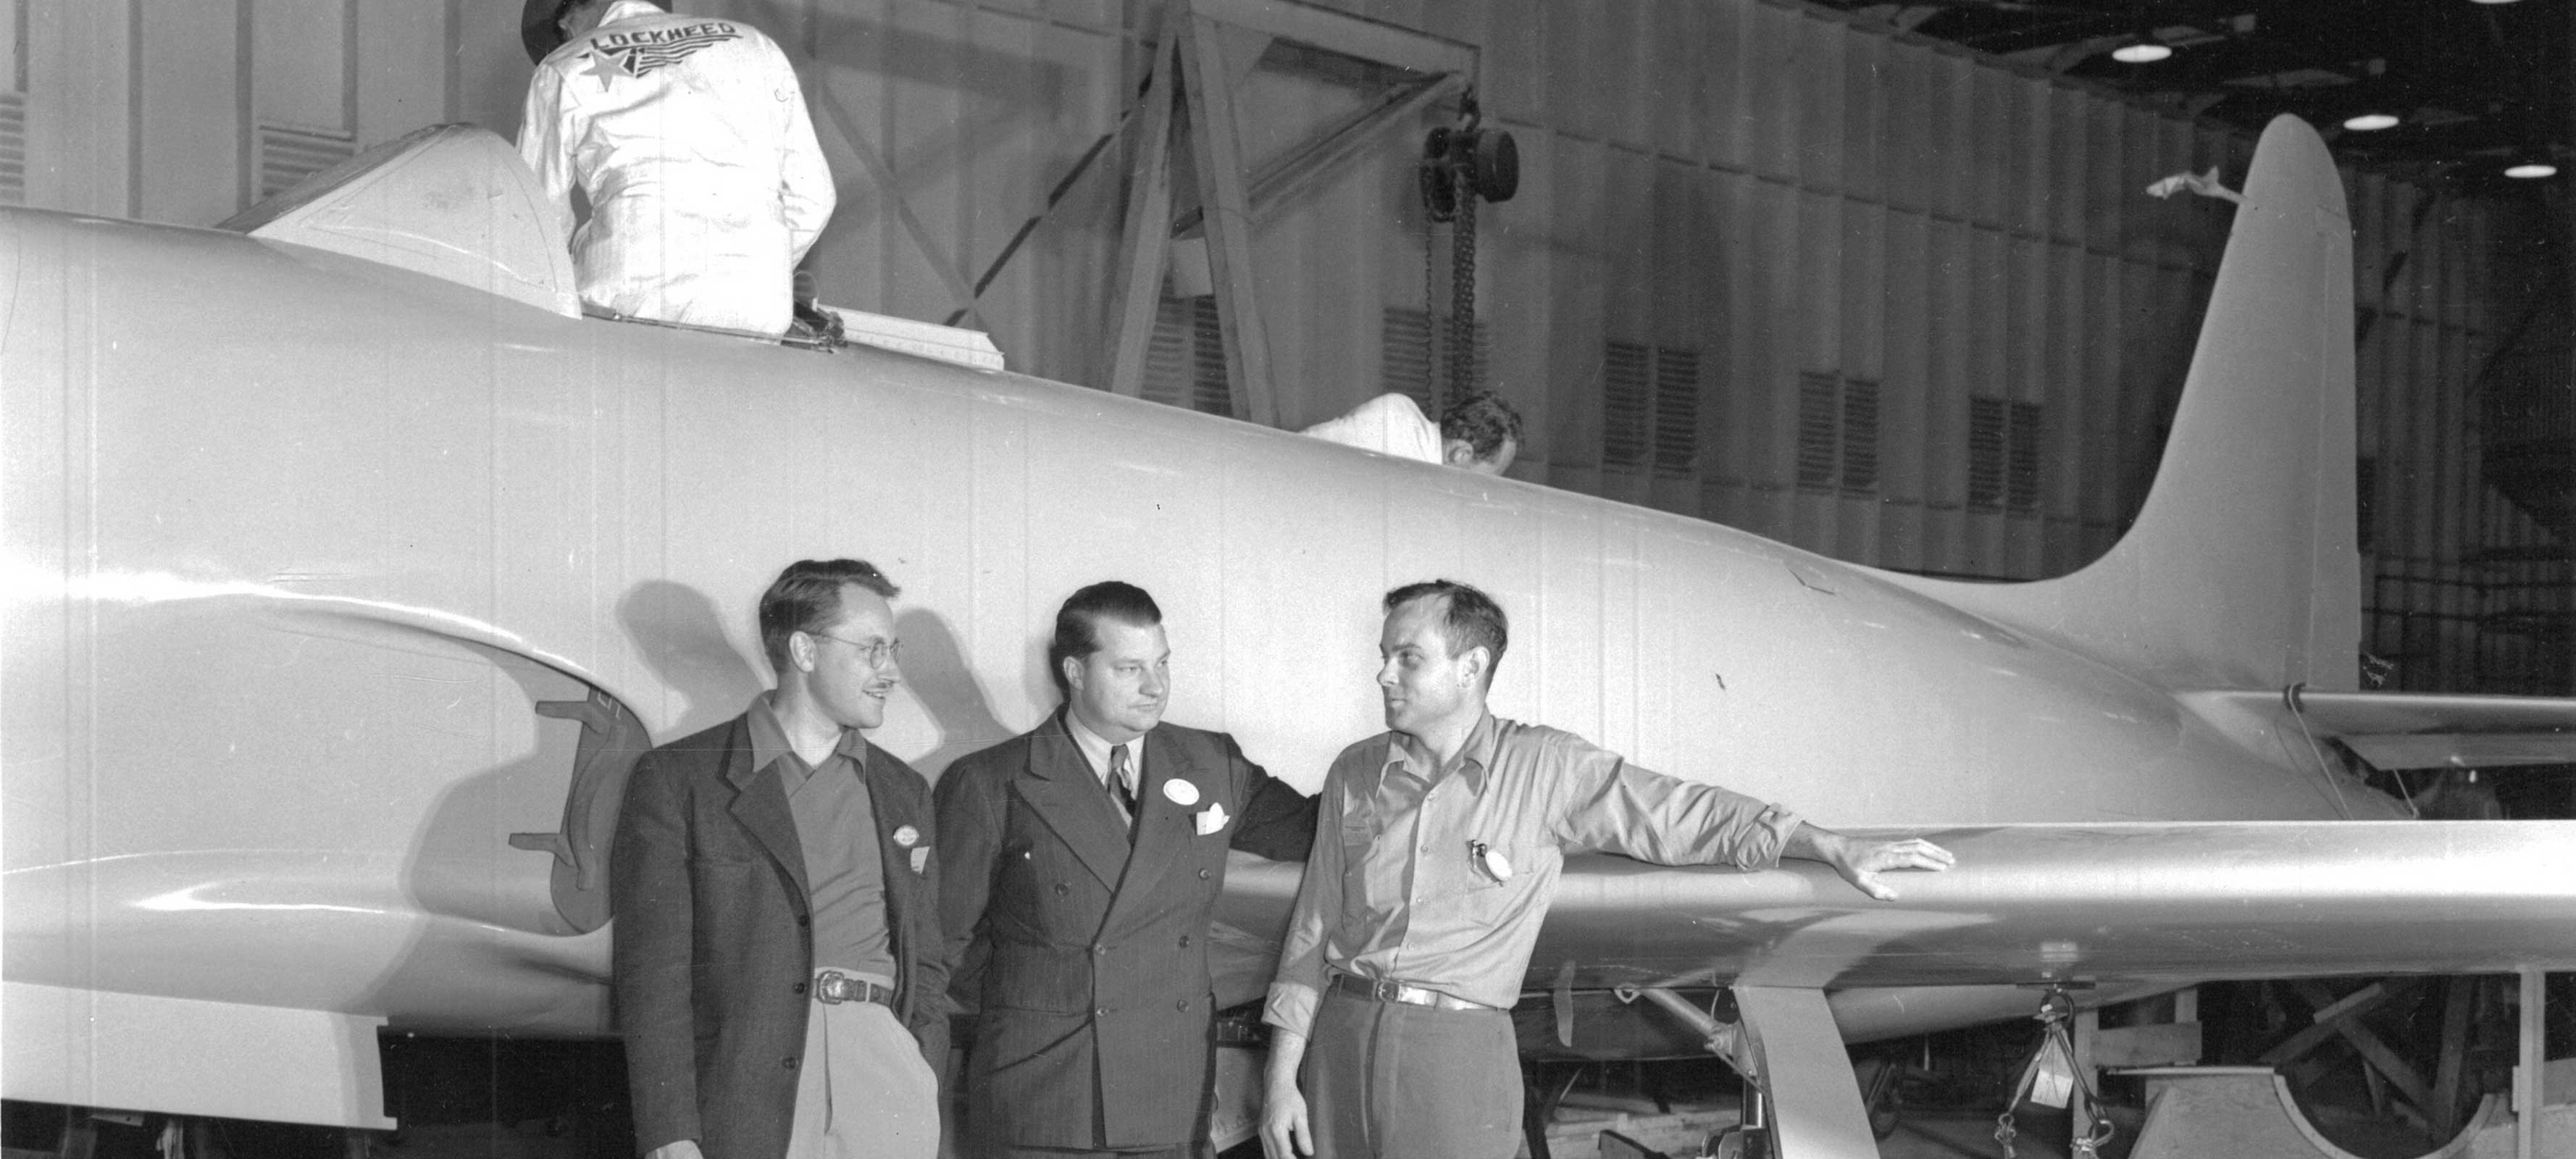 Black and white photo of men near airplane